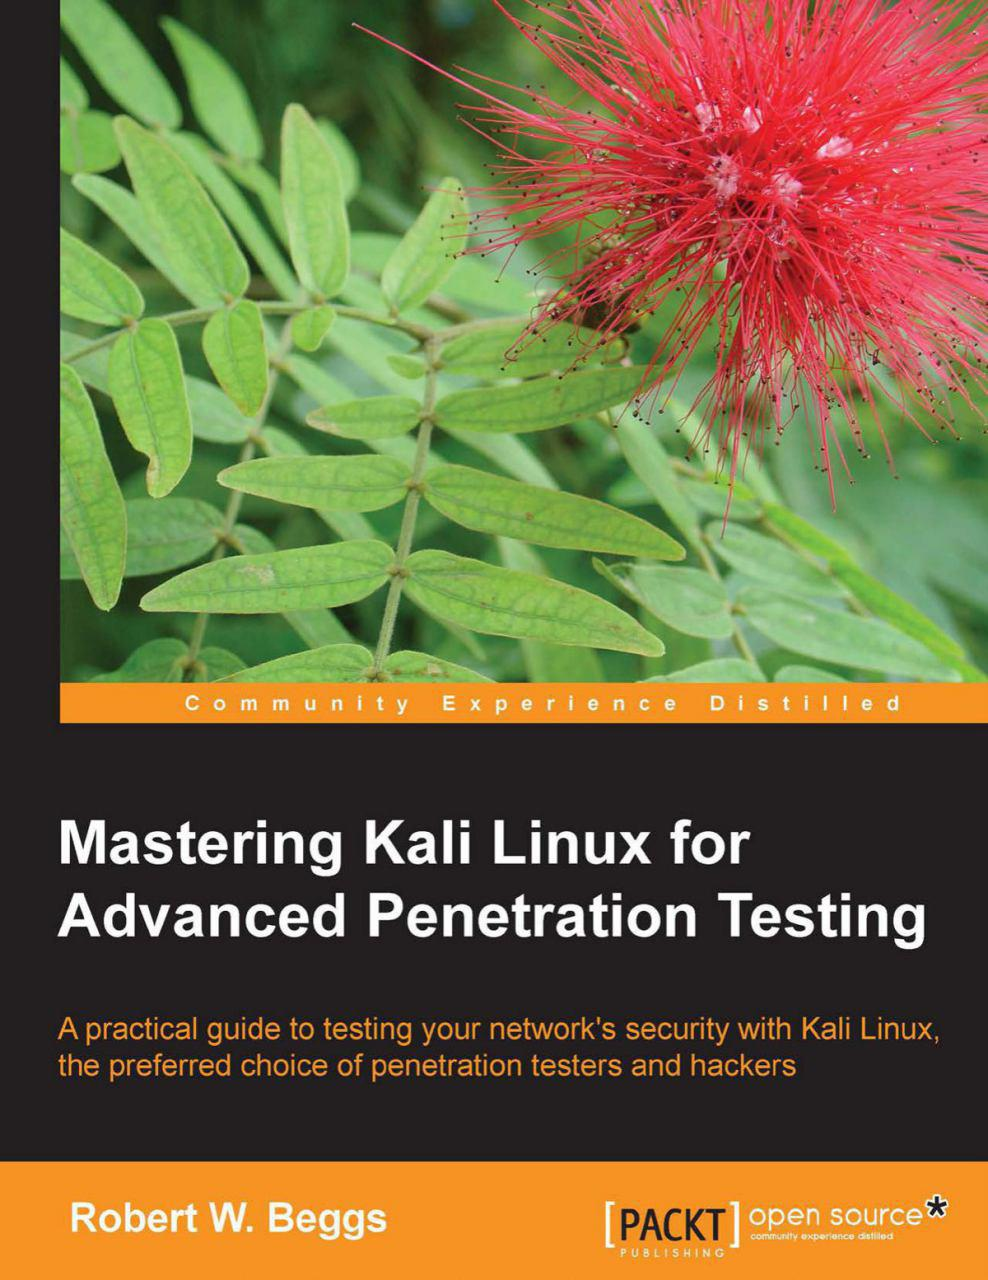 دانلود کتاب Mastering Kali Linux for Advanced